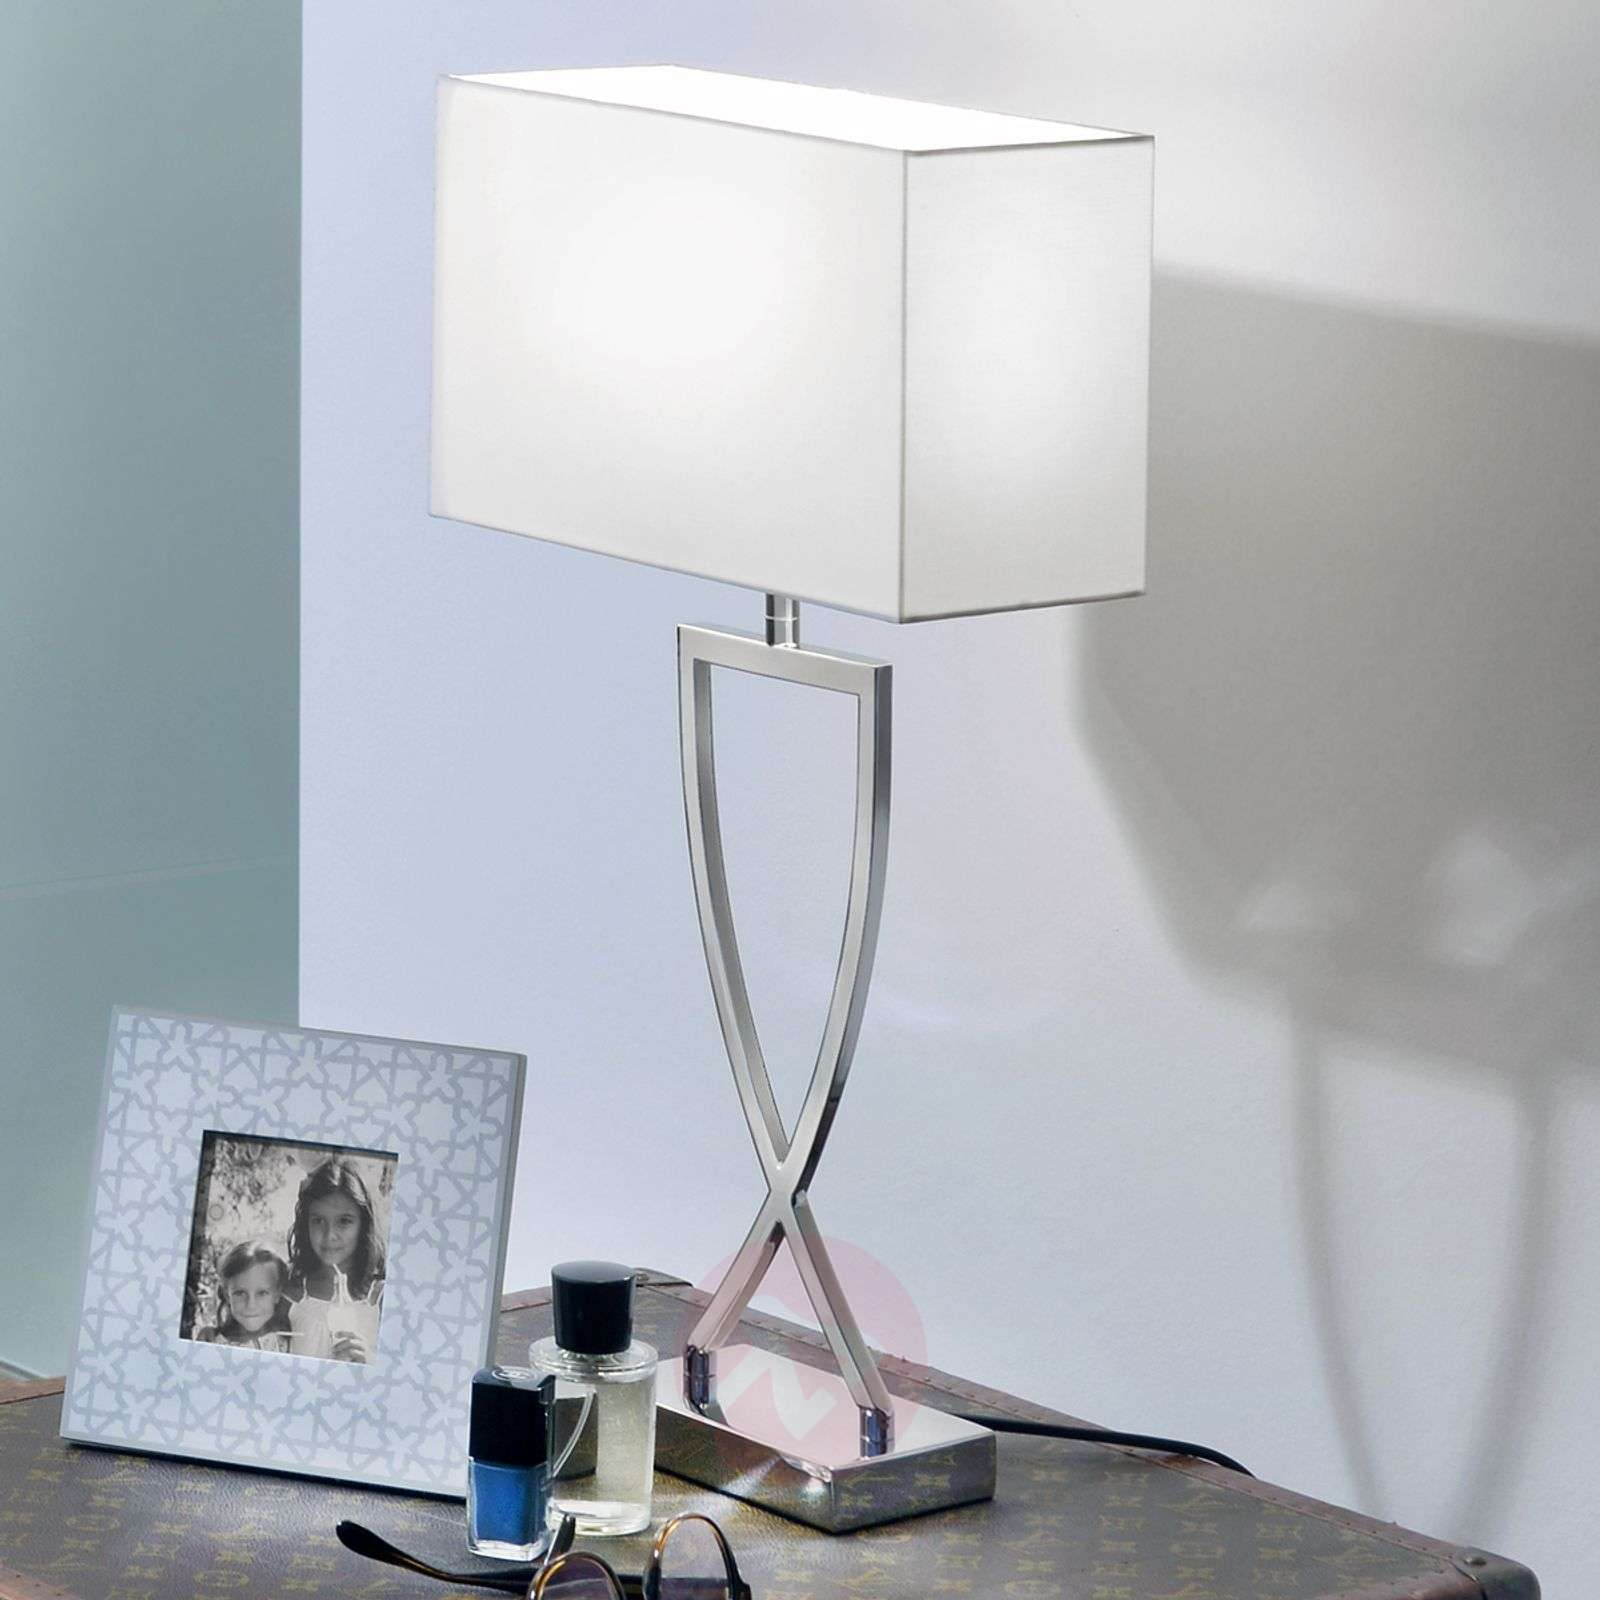 Fabric shade table lamp Toulouse, 68.5cm tall-8507592-01